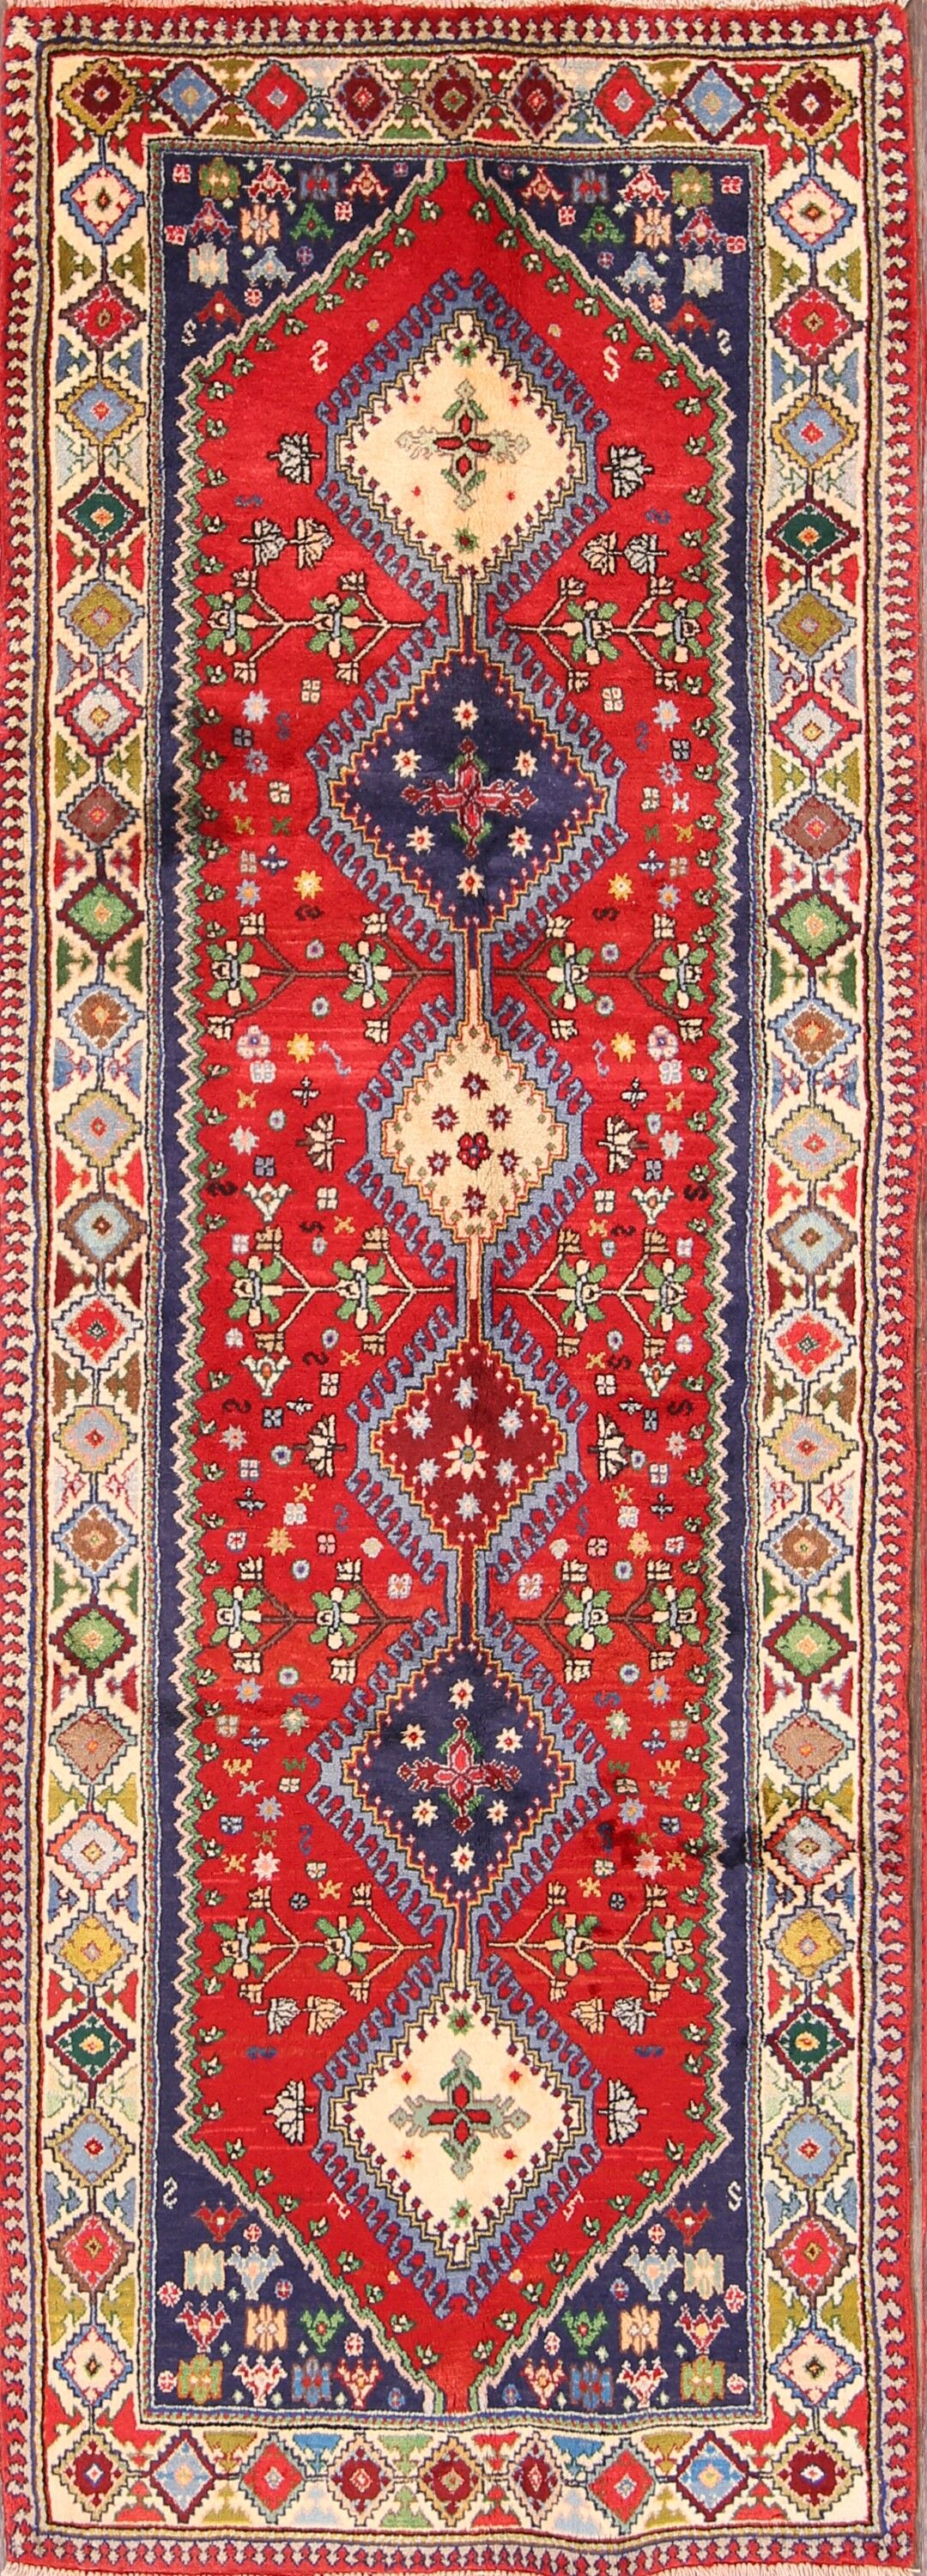 One-of-a-Kind Geometric Tribal Yalameh Persian Hand-Knotted 3'4